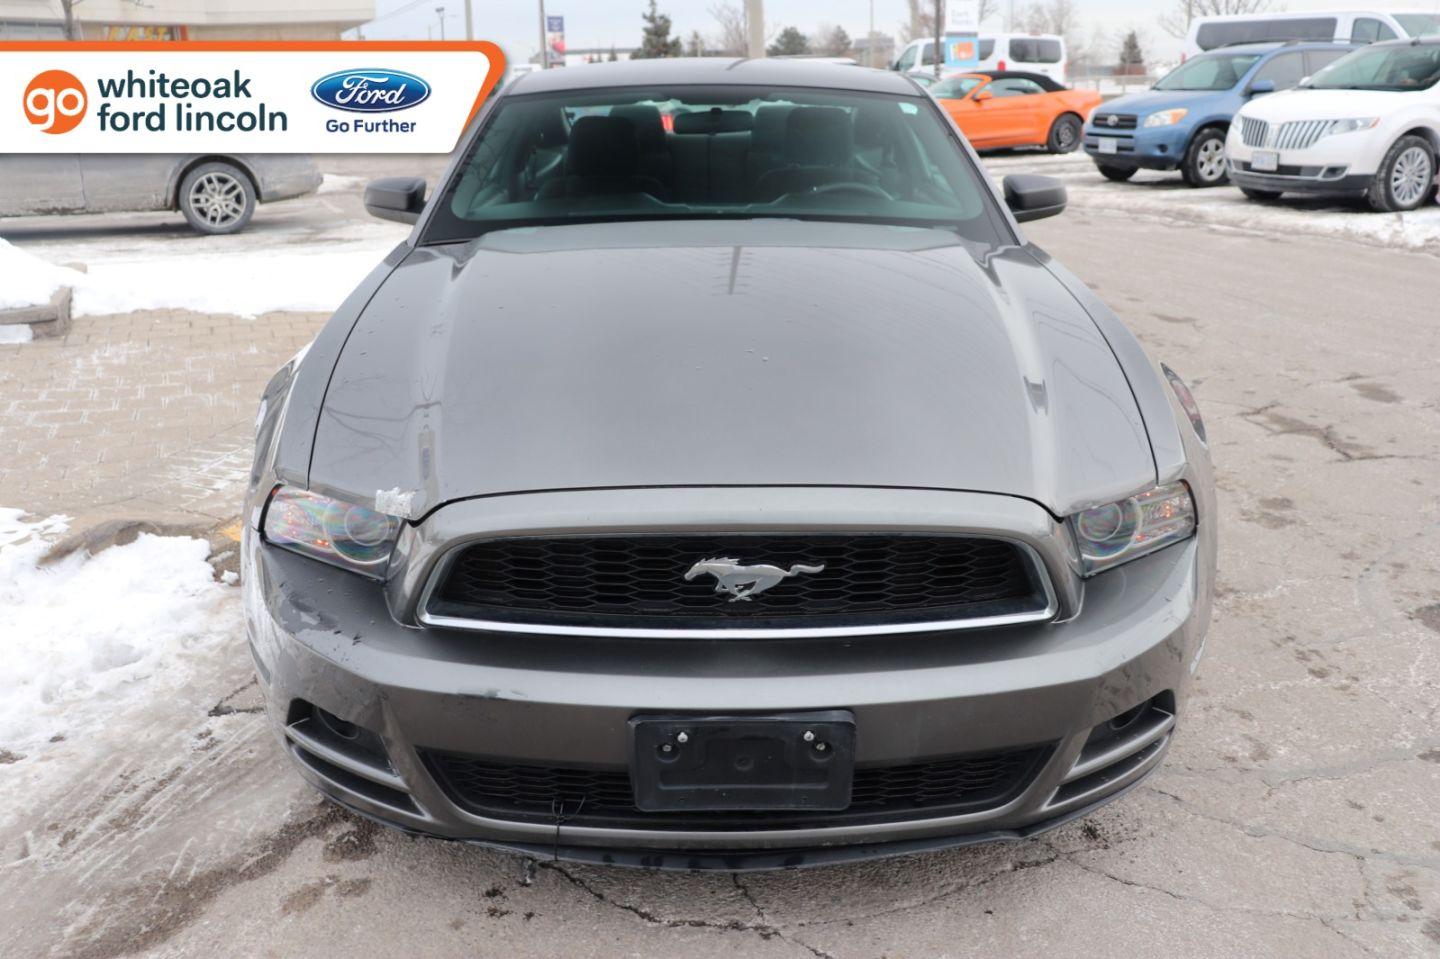 2013 Ford Mustang V6 for sale in Mississauga, Ontario